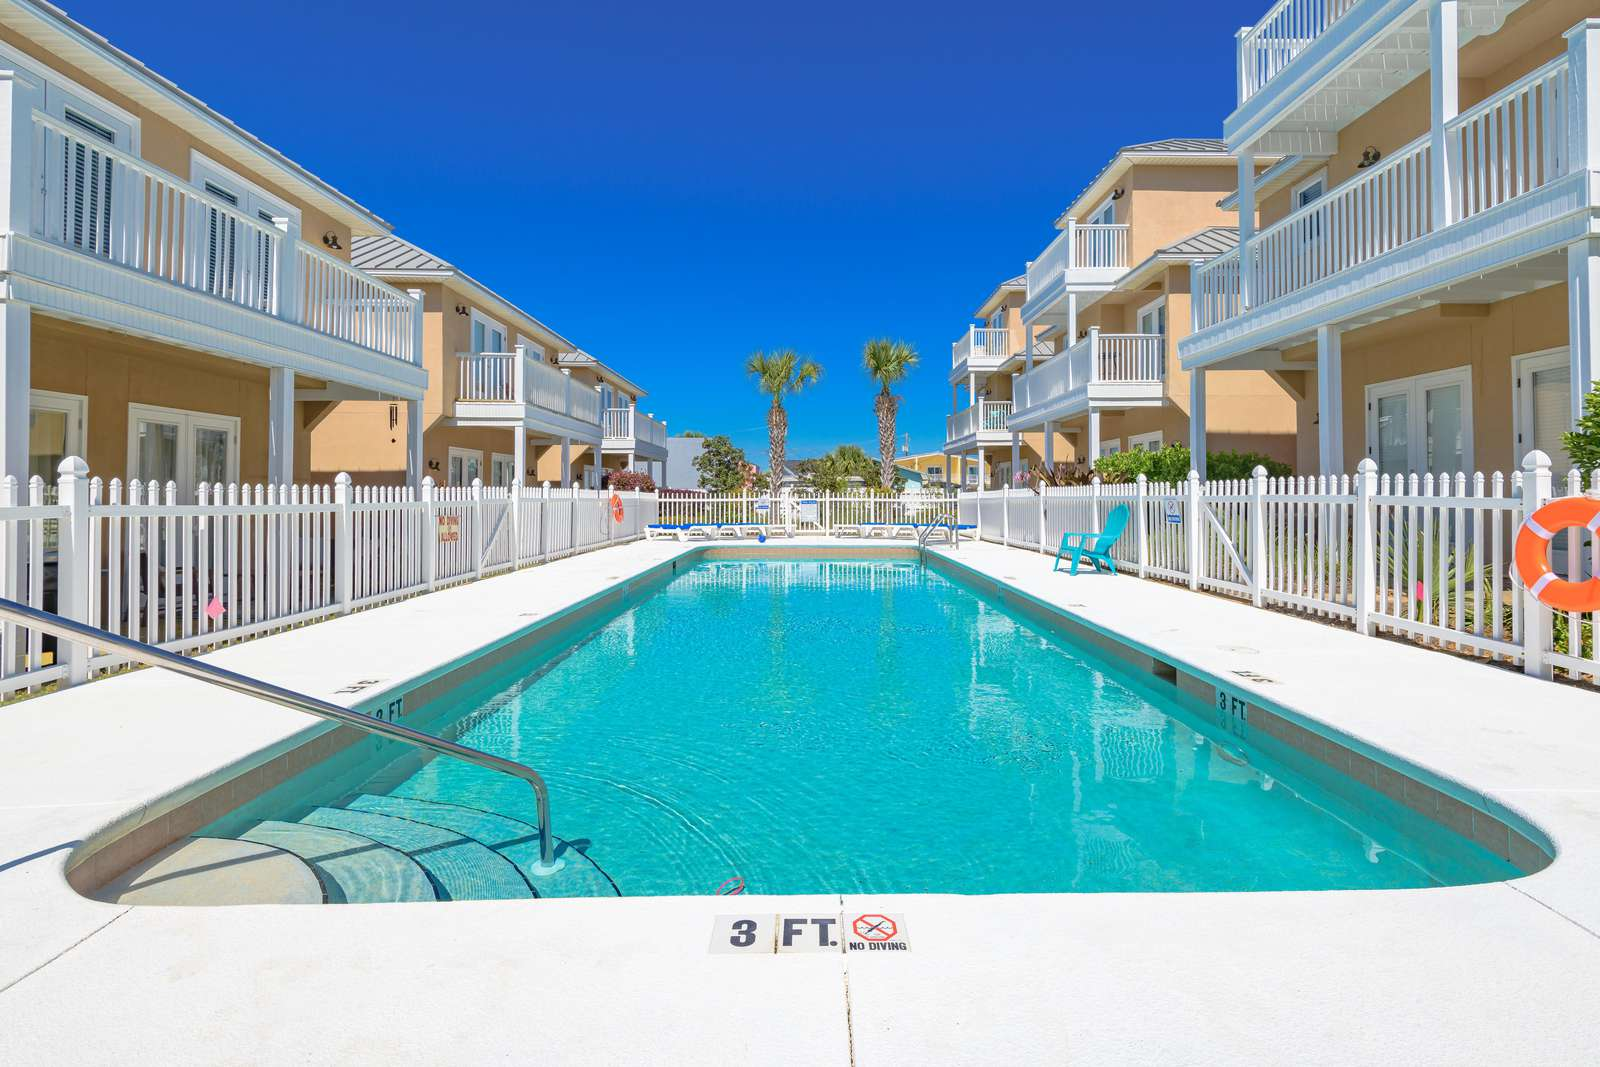 Take a dip in the pool right out your back door!